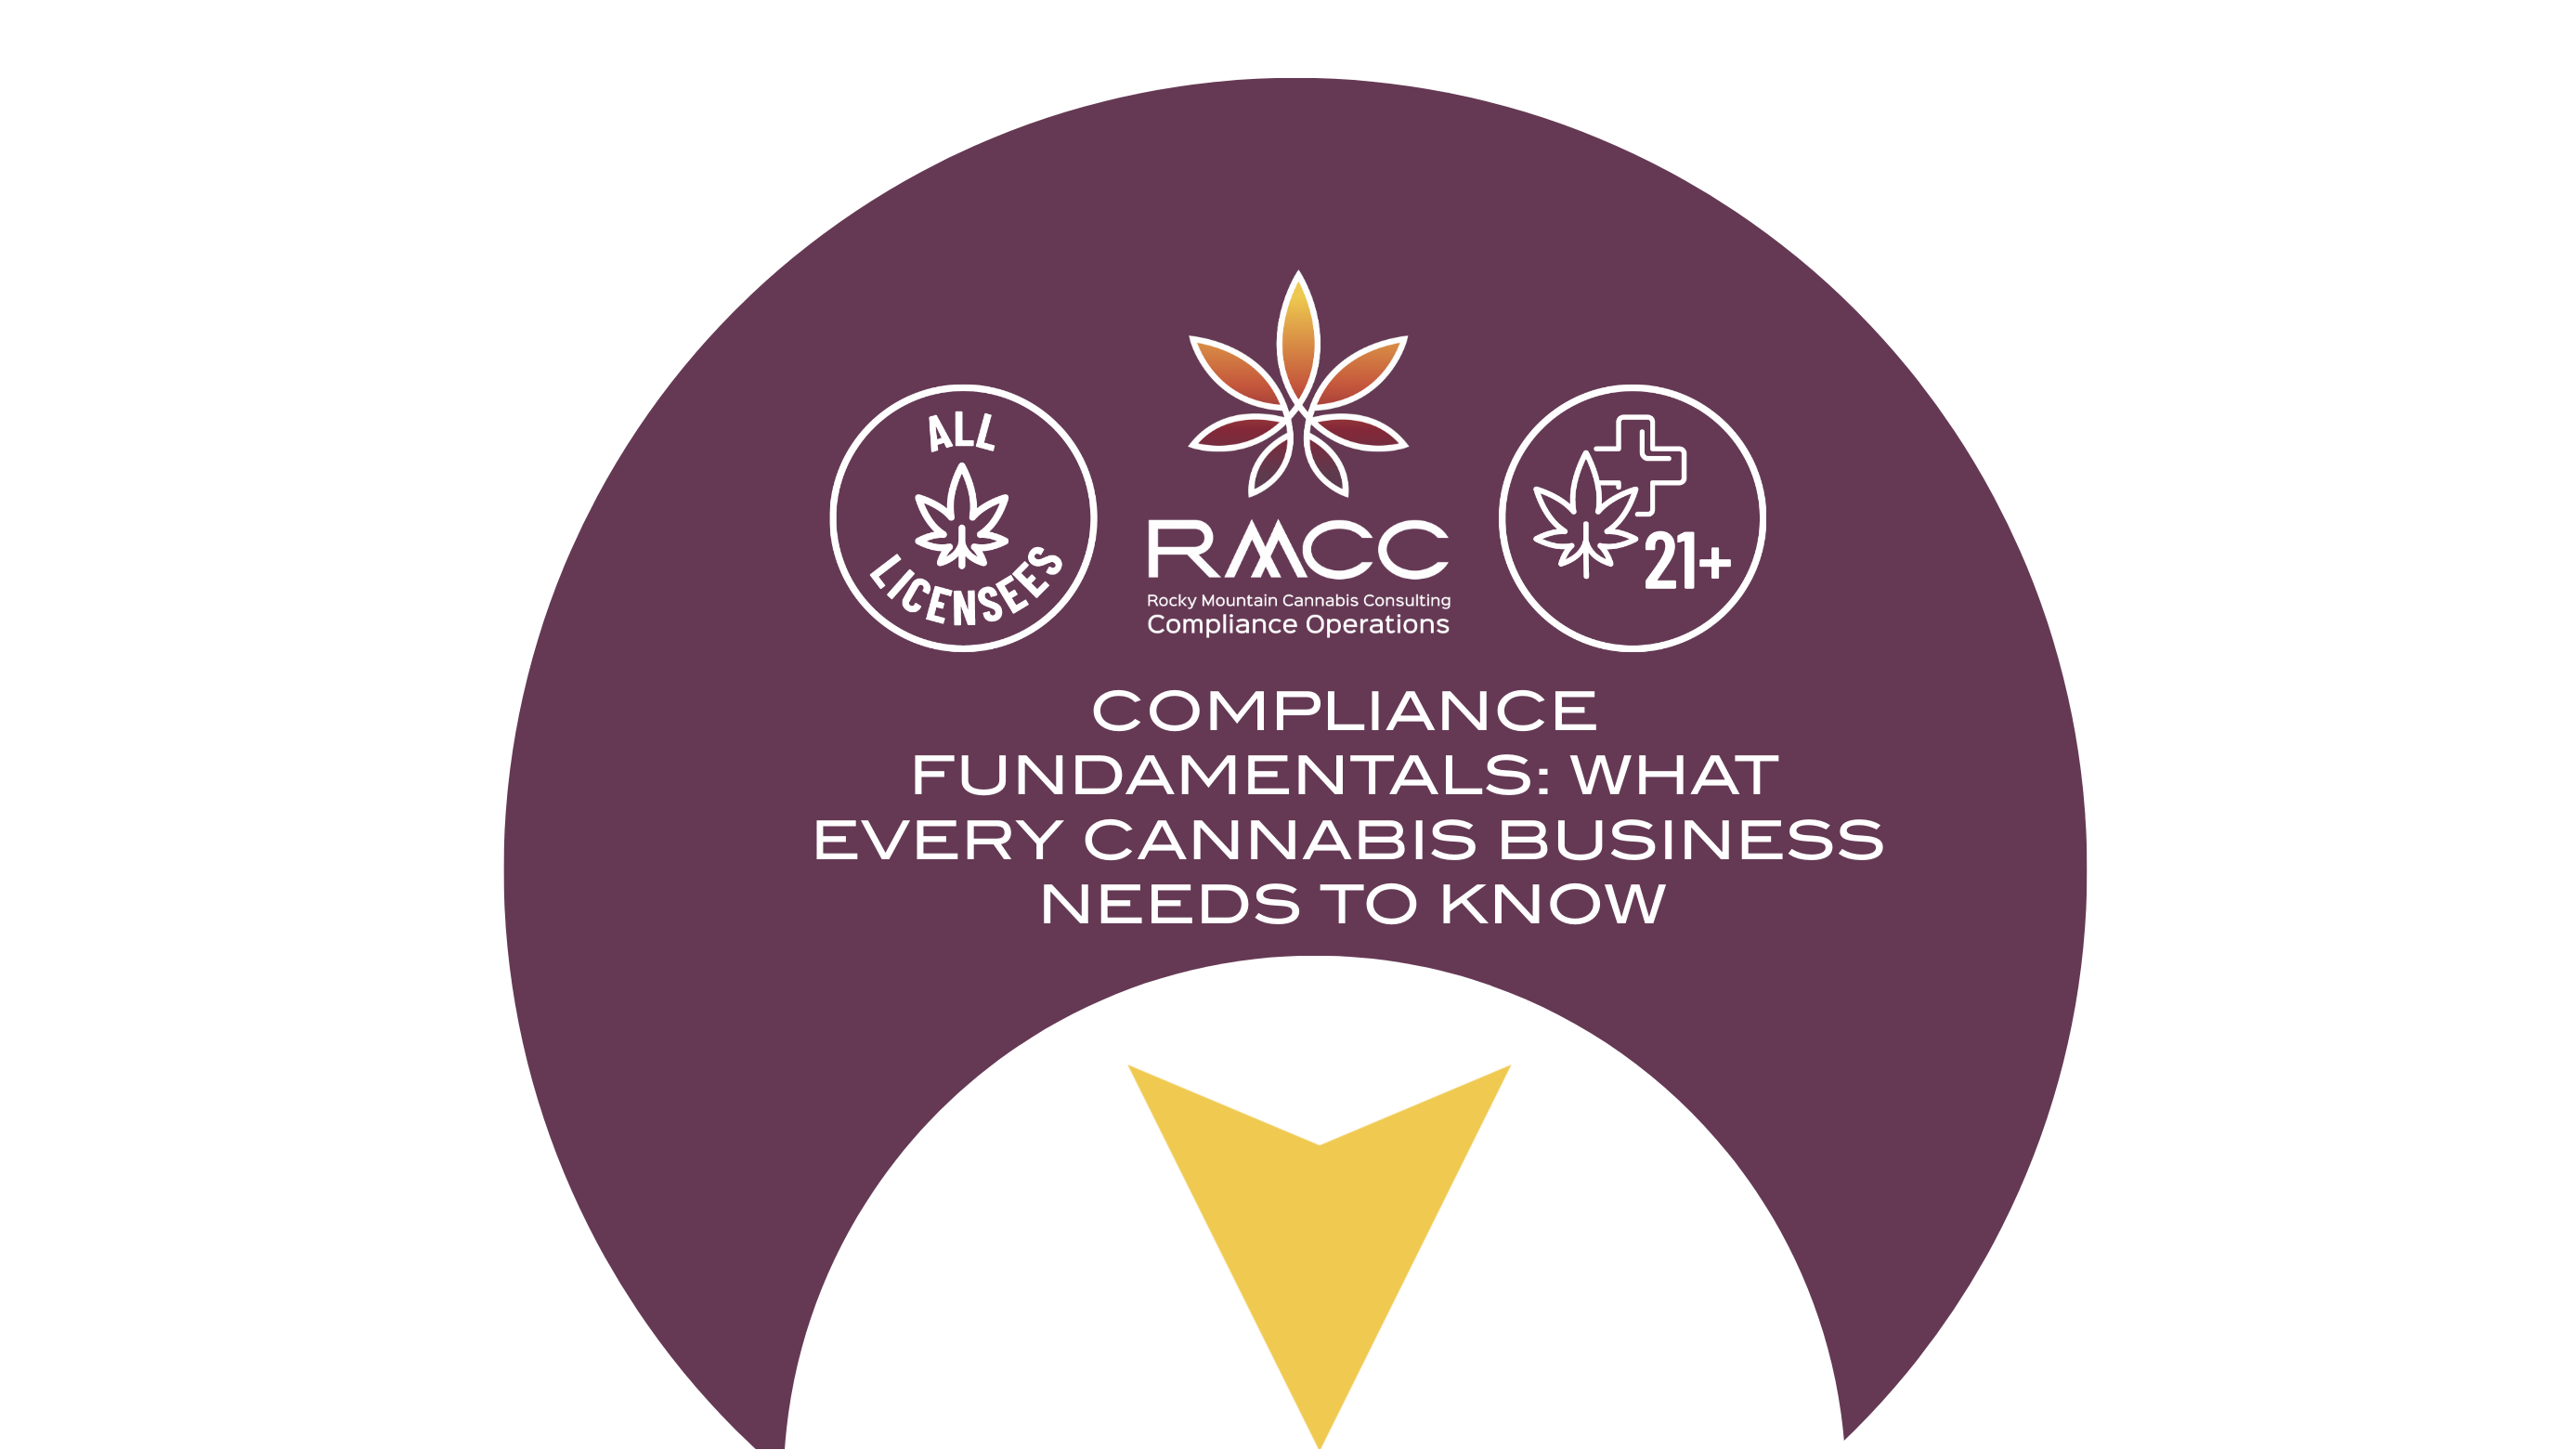 Sales Page Compliance Fundamentals: What Every Cannabis Business Needs to Know  RMCC METRC tickets, METRC training, Oklahoma cannabis, Maine Cannabis, Oregon Cannabis, coronavirus, cannabis certification